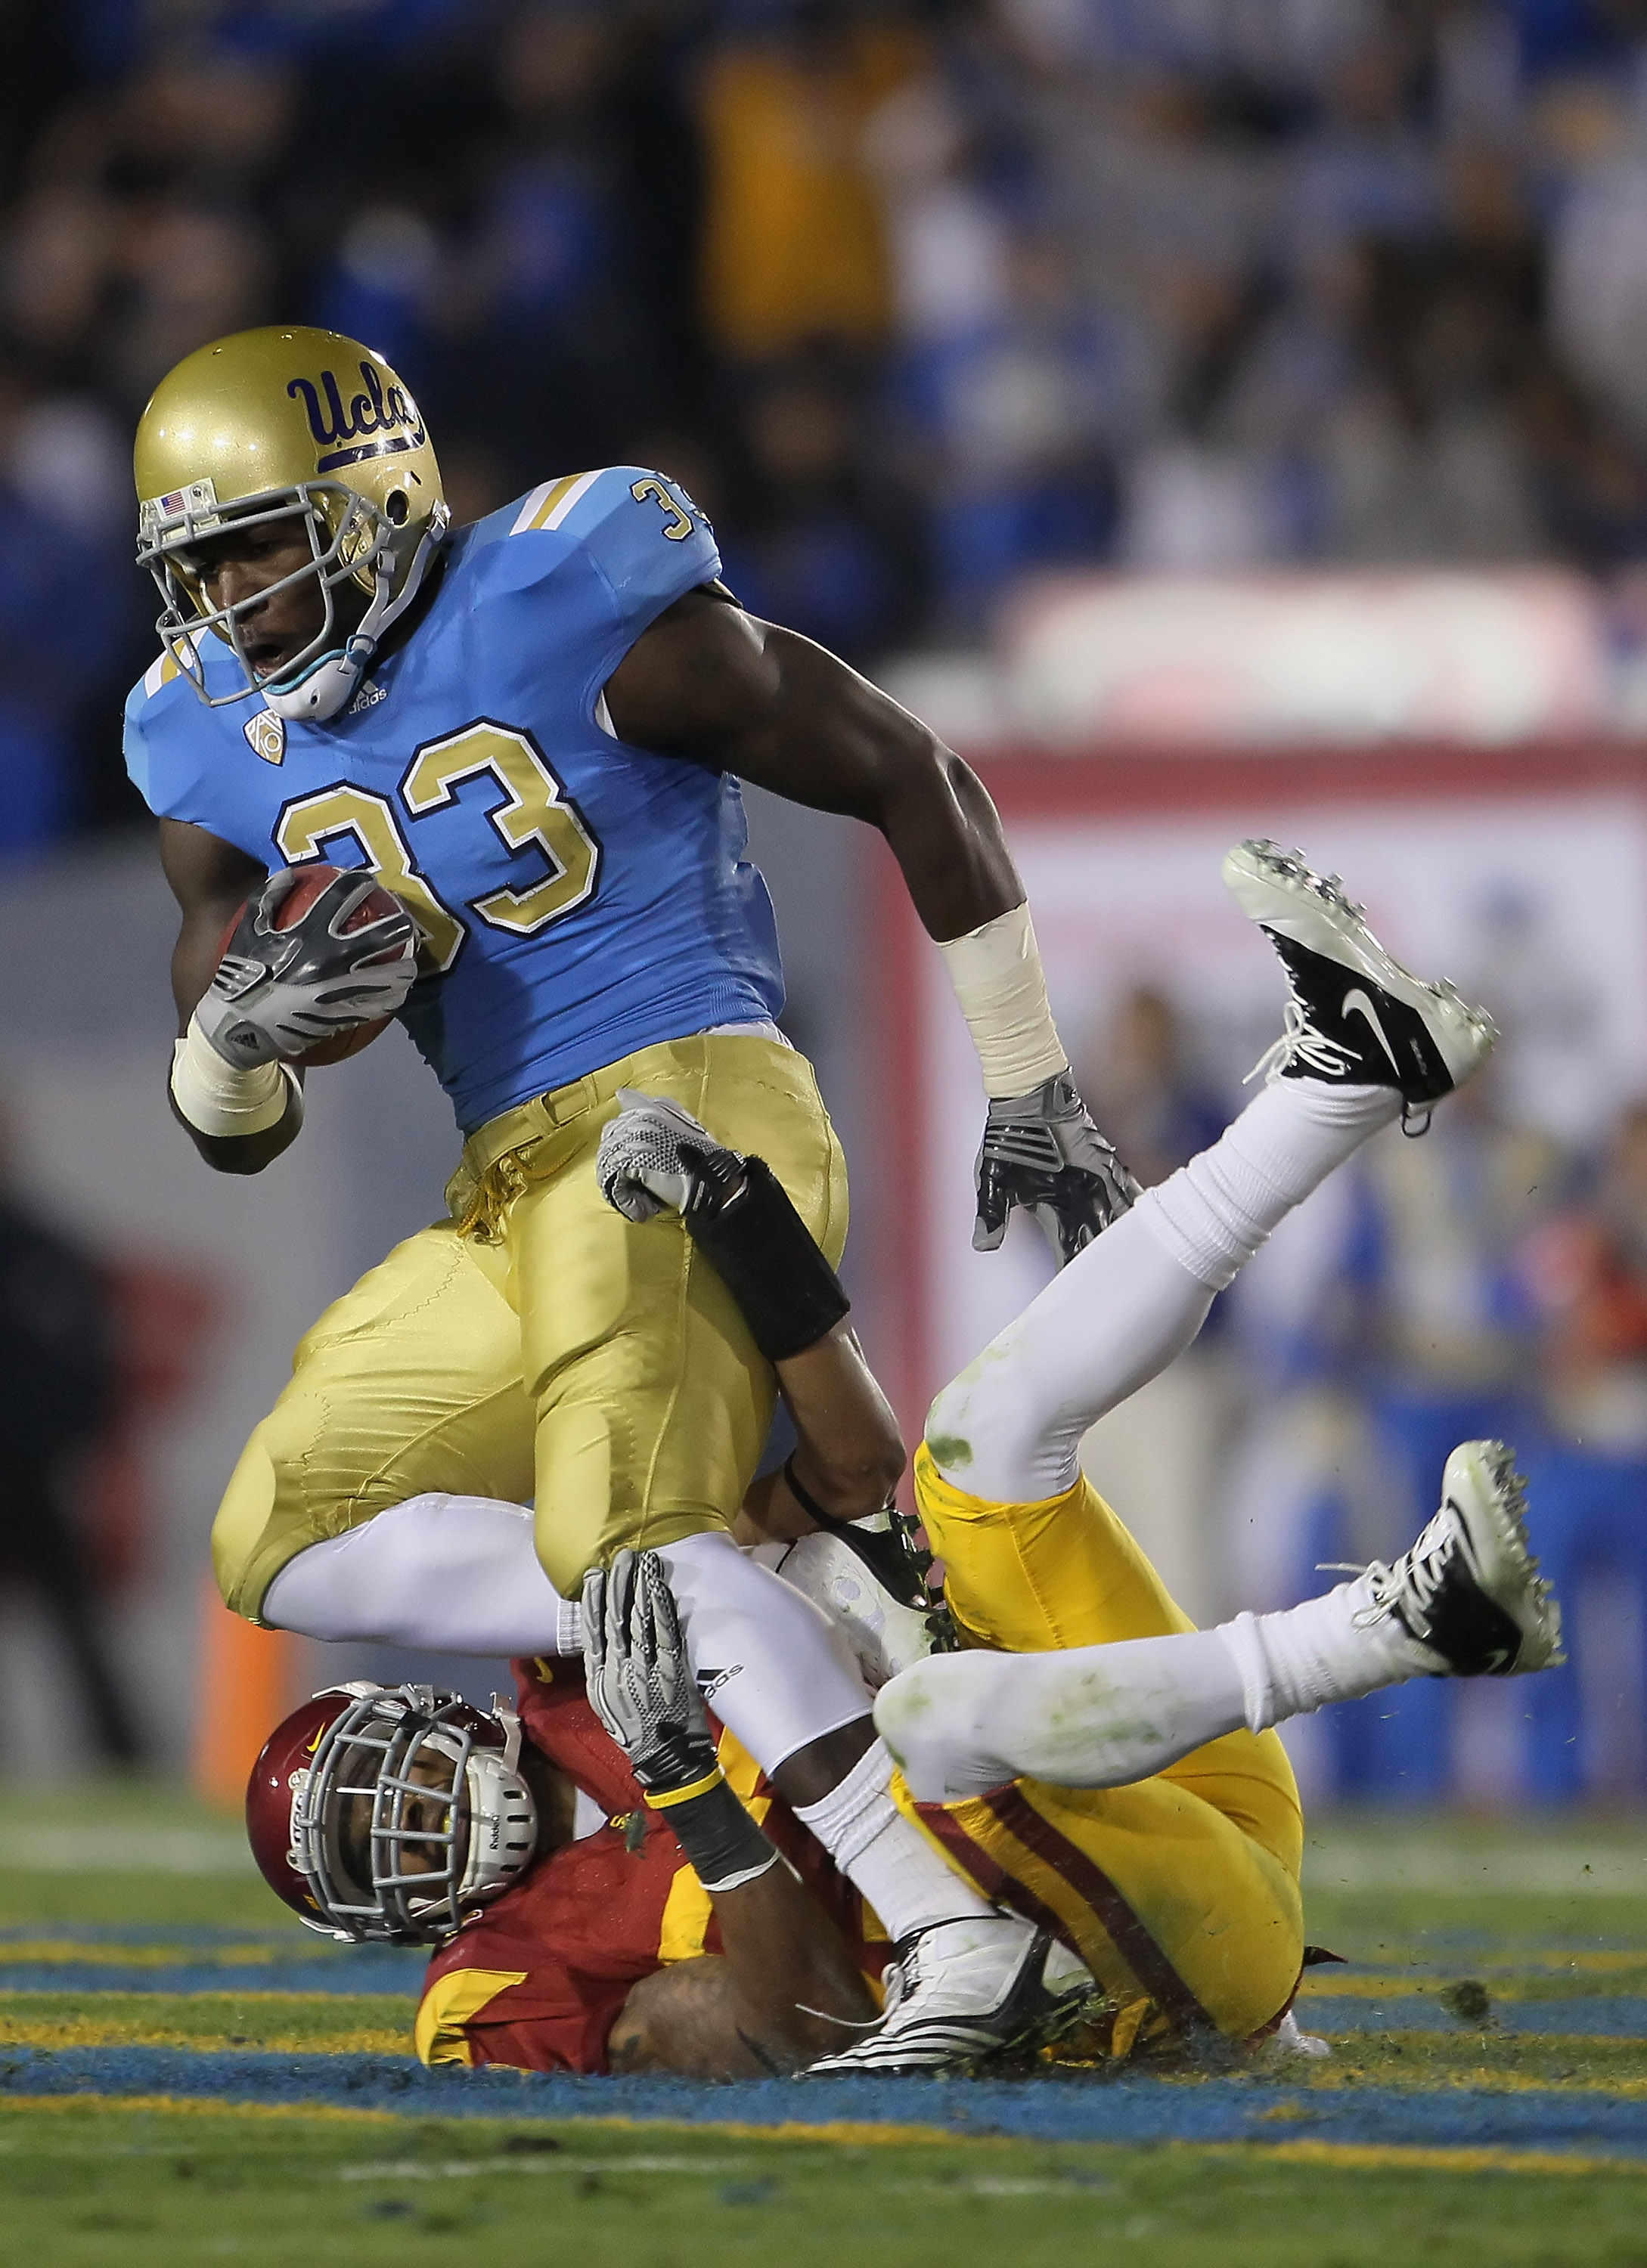 PASADENA, CA - DECEMBER 04:  Running back Derrick Coleman #33 of the UCLA Bruins is brought down by Marshall Jones #27 of the USC Trojans during the first half at the Rose Bowl on December 4, 2010 in Pasadena, California.  (Photo by Jeff Gross/Getty Image